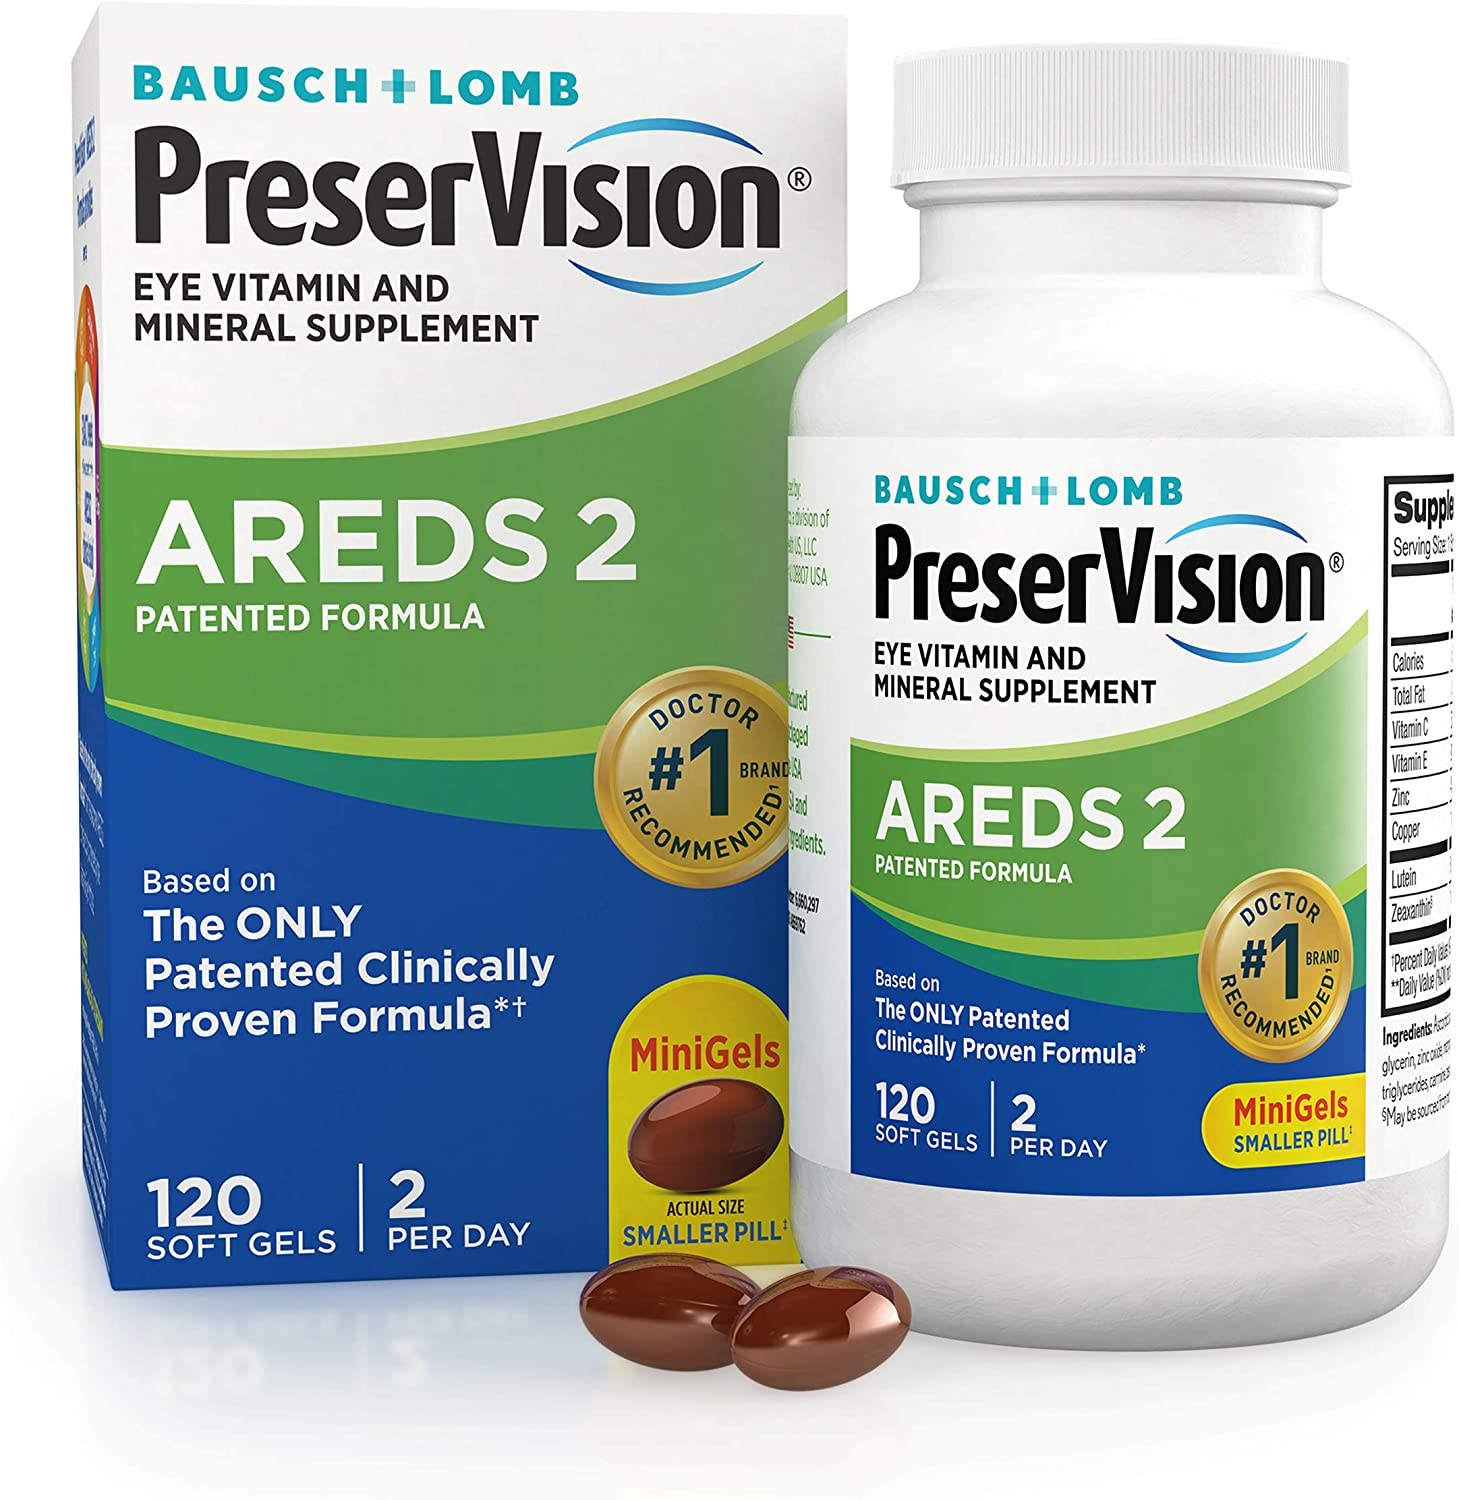 PreserVision AREDS 2 Eye Vitamin & Mineral Supplement, Contains Lutein, Vitamin C, Zeaxanthin, Zinc & Vitamin E, 120 Softgels (Packaging May Vary)